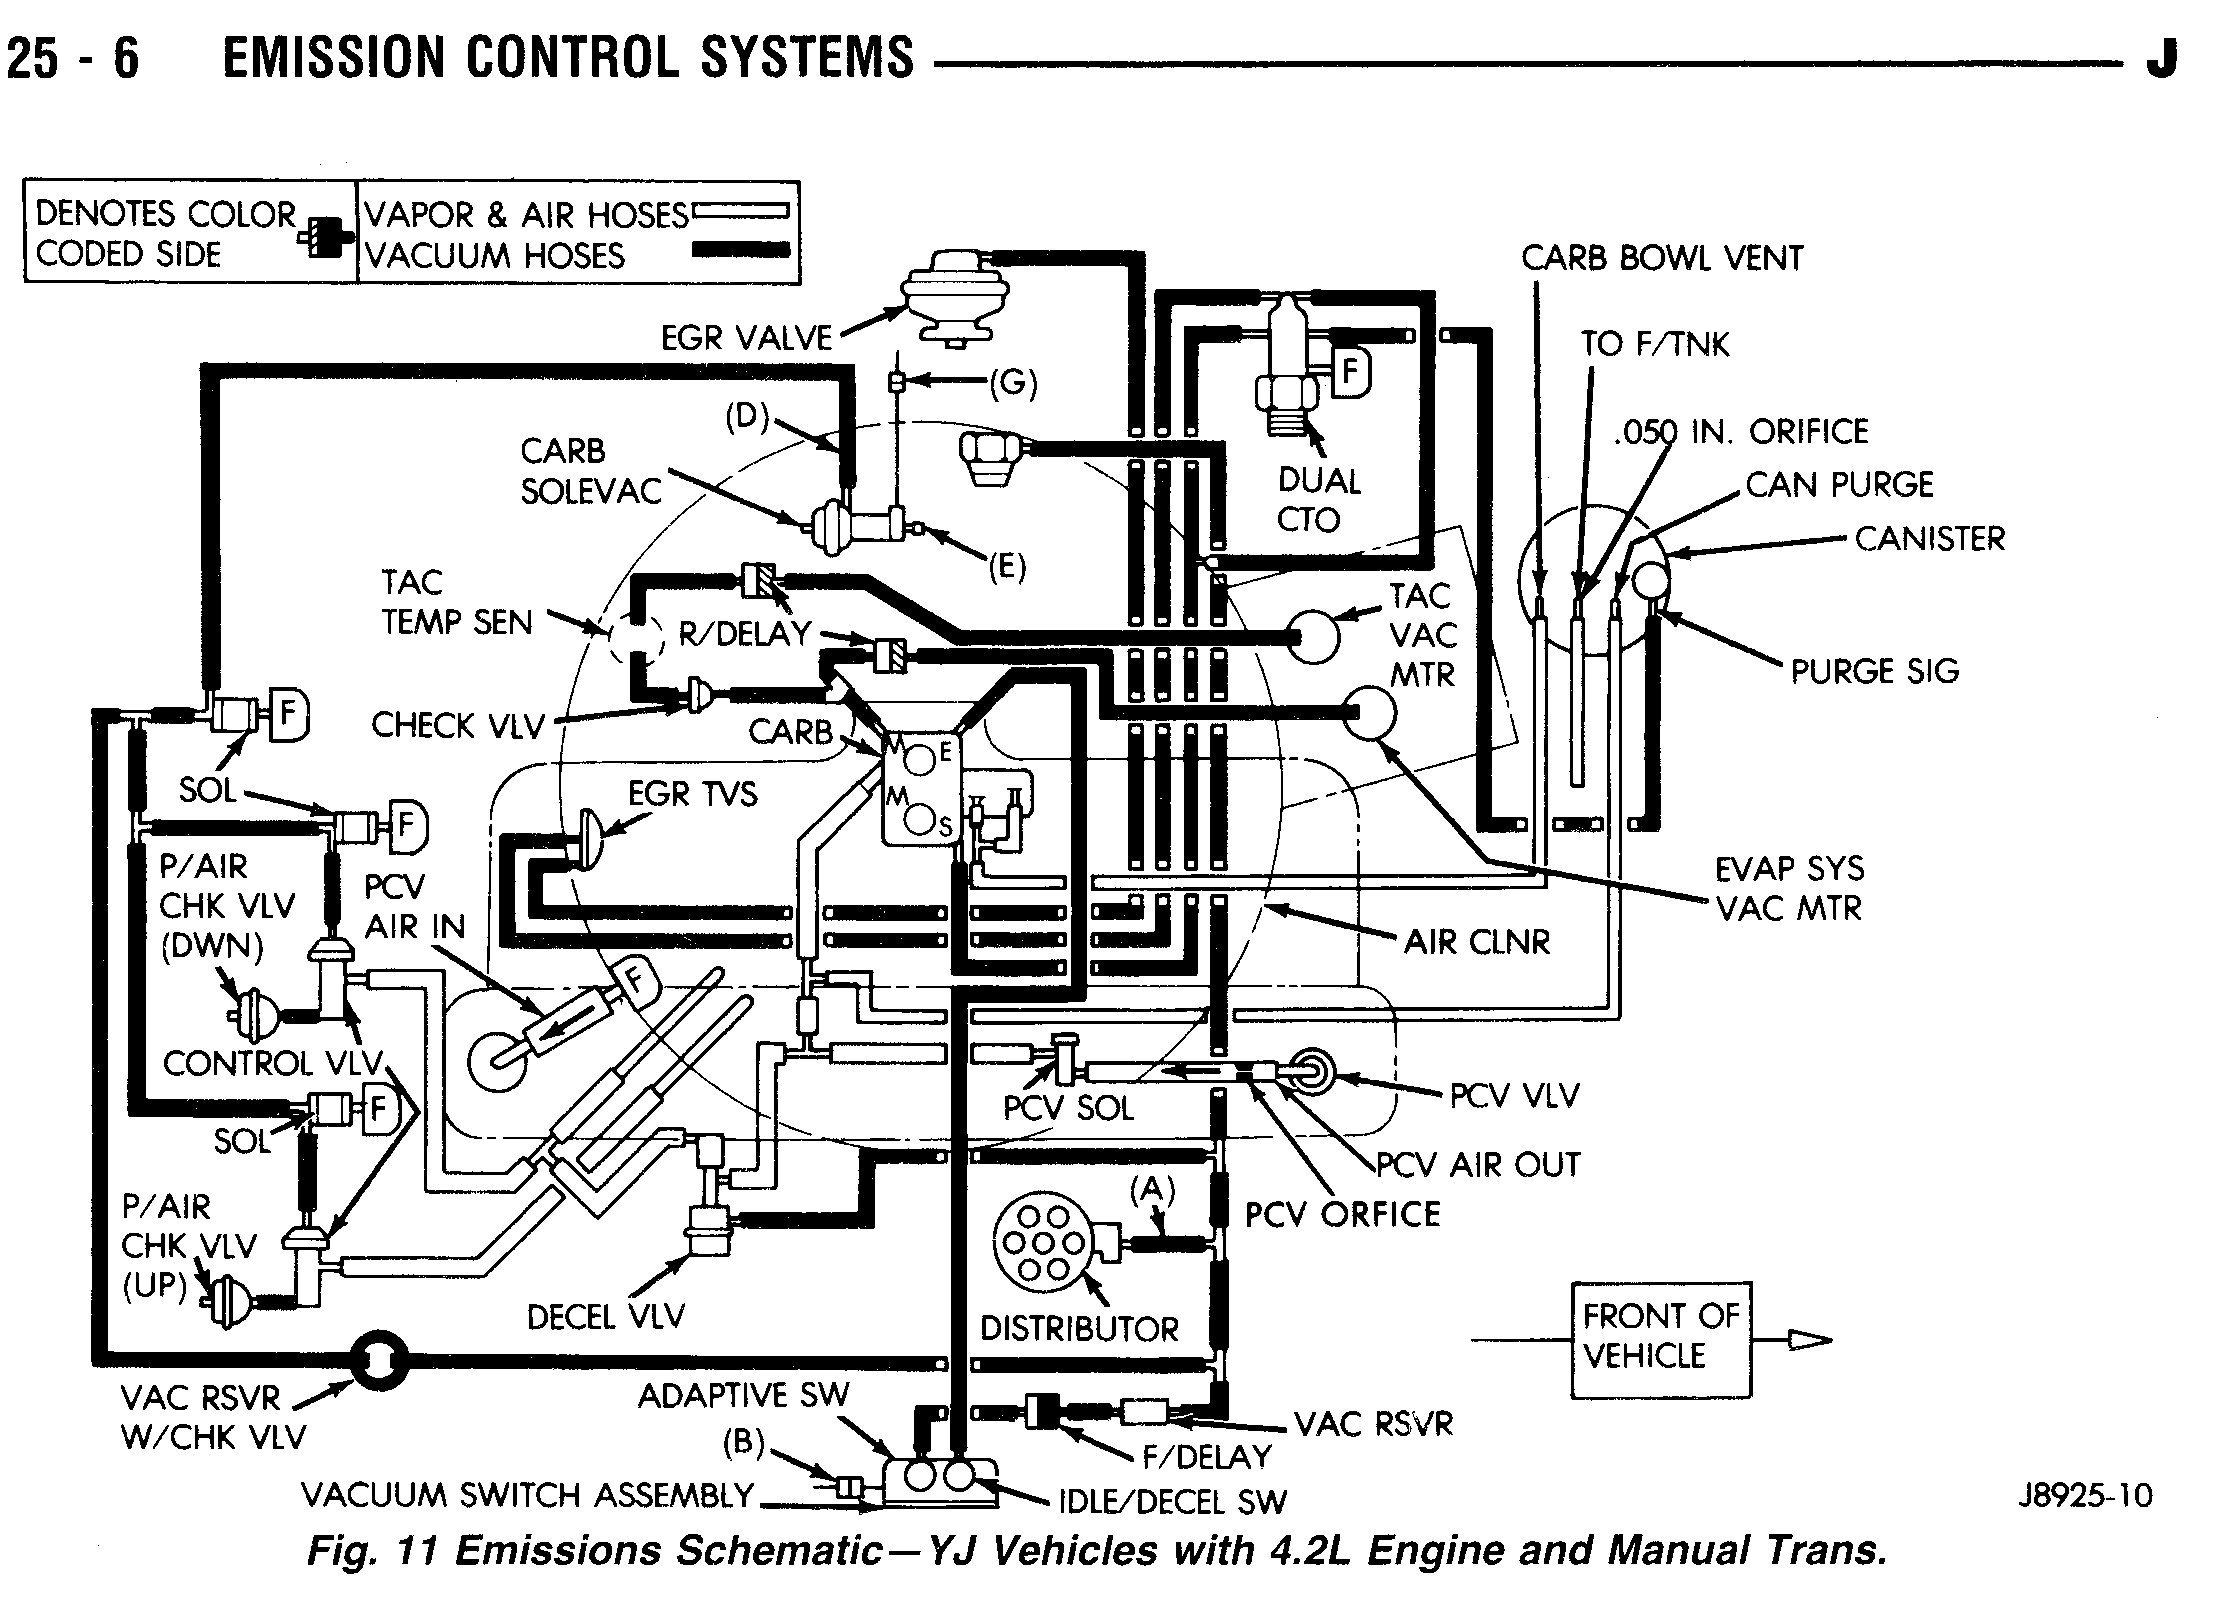 Radio Fuse Box Diagram For 1997 Jeep Cherokee also 1998 Cherokee Sport Light Running Light Problems 6808 besides Showthread moreover Gmc Sierra 1989 Gmc Sierra Fuel Pump To Feul Pump Relay And Oil Pressu additionally Replace. on 1996 jeep cherokee sport fuse box diagram